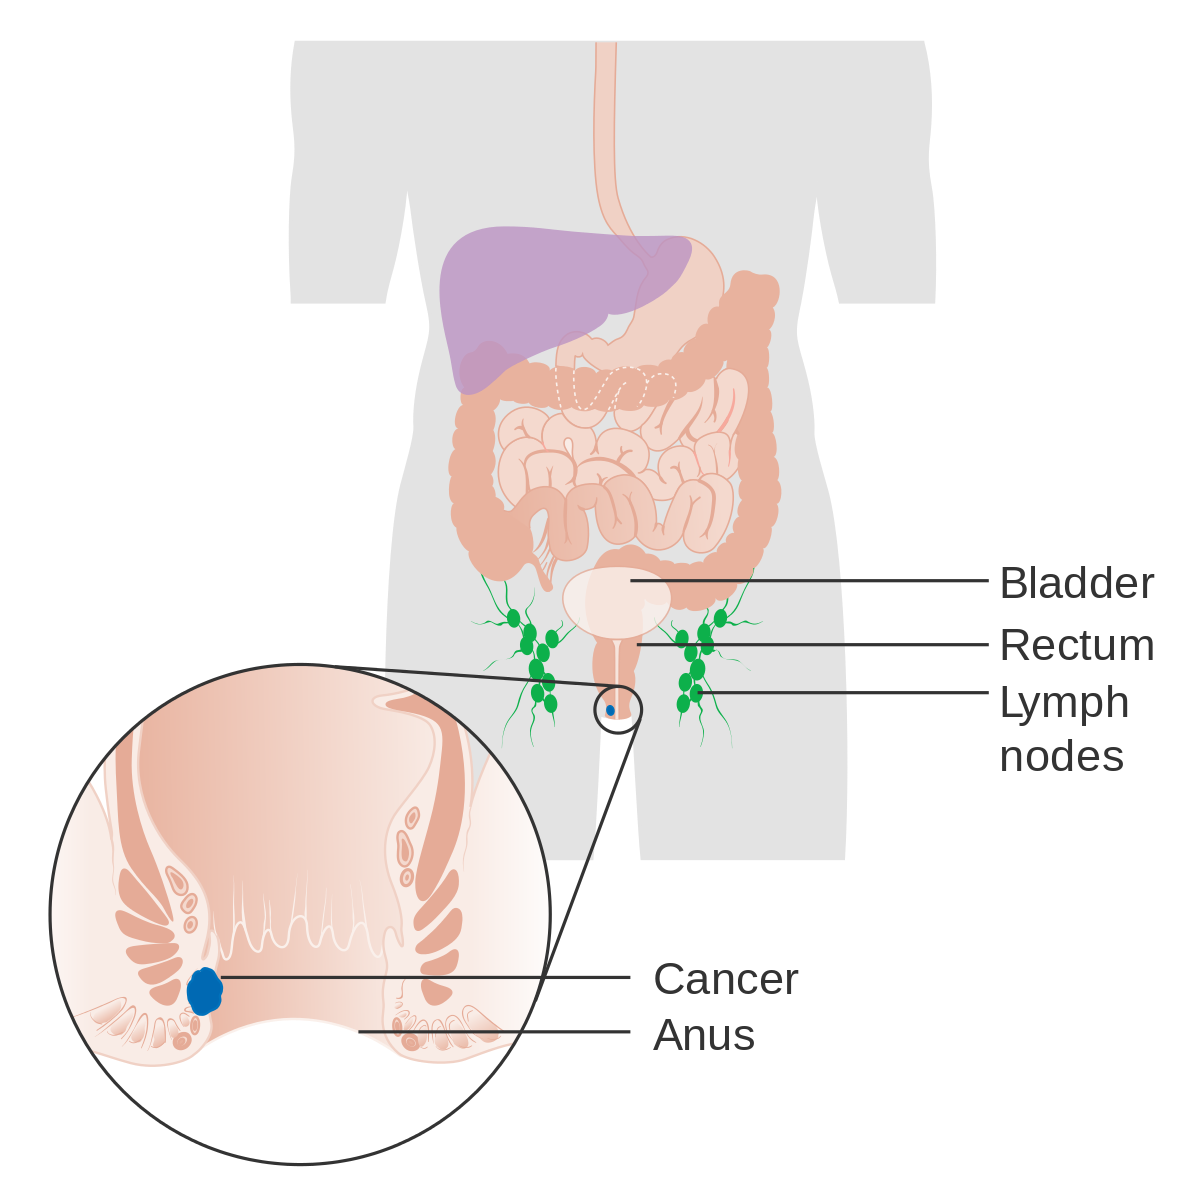 hpv causes rectal cancer